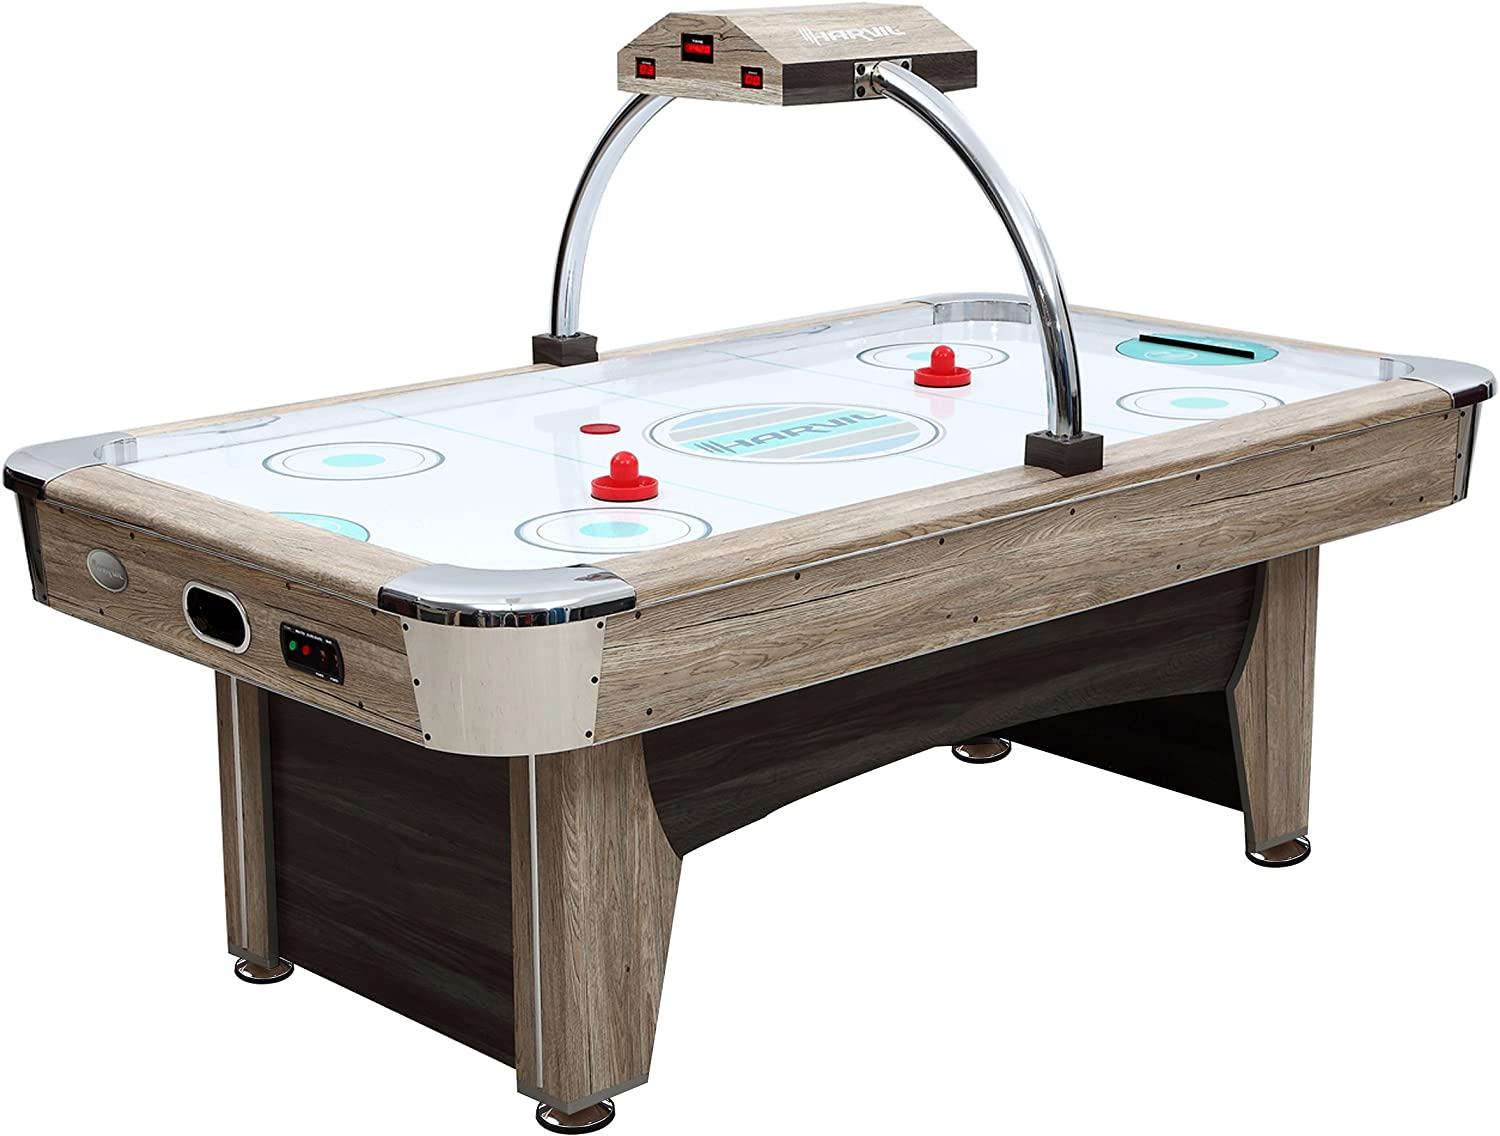 Top 10 Best Air Hockey Table for Kids (2020 Reviews & Guide) 2